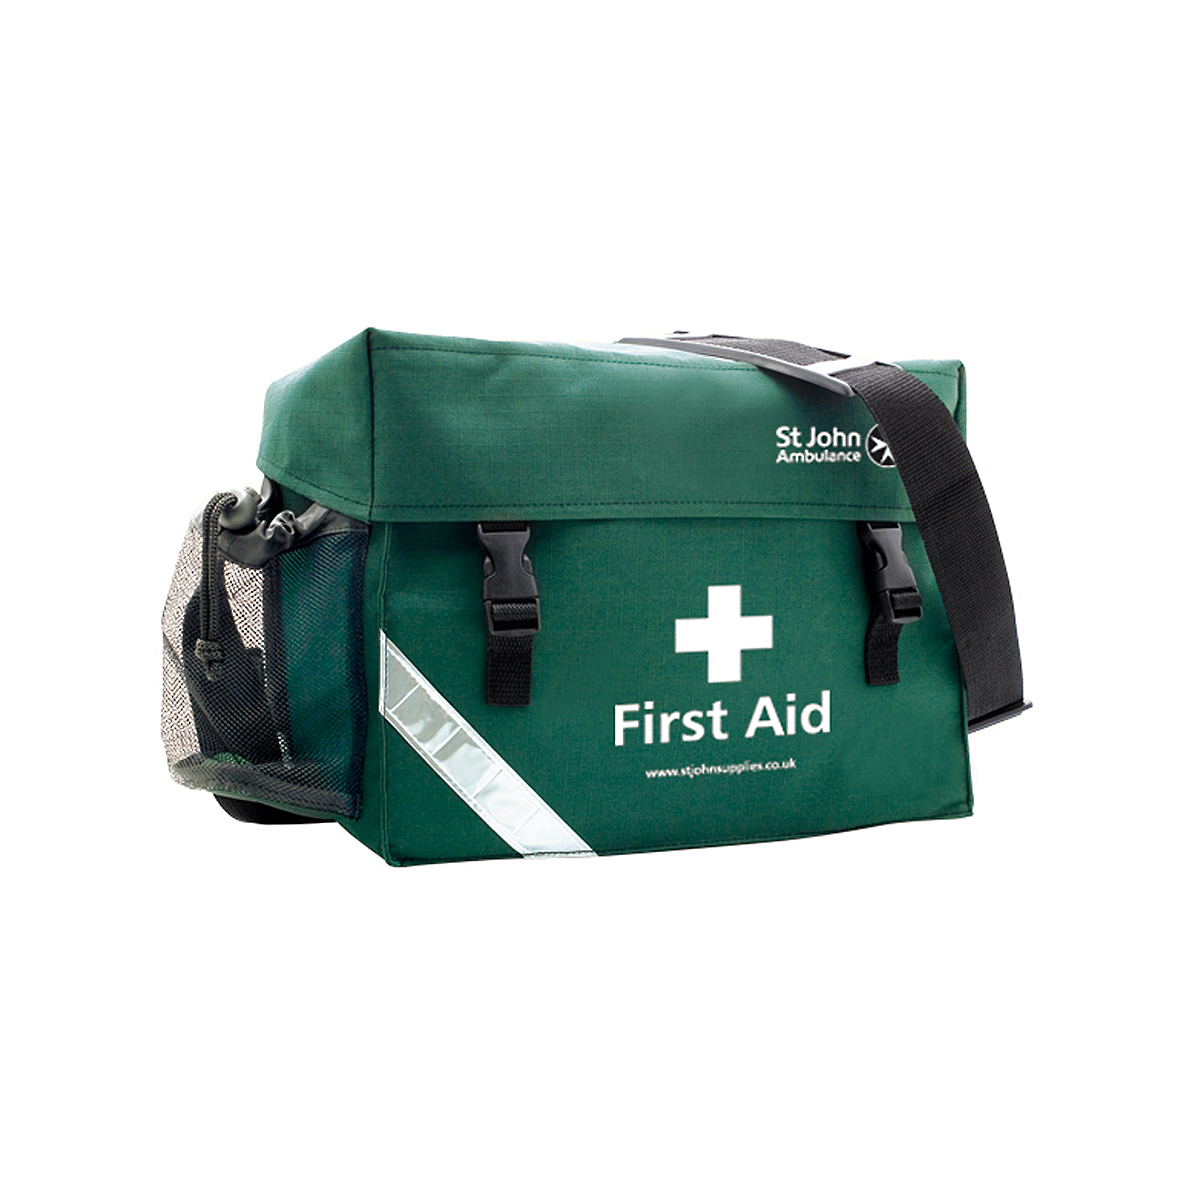 St John Ambulance Zenith First Response Bag (Empty)